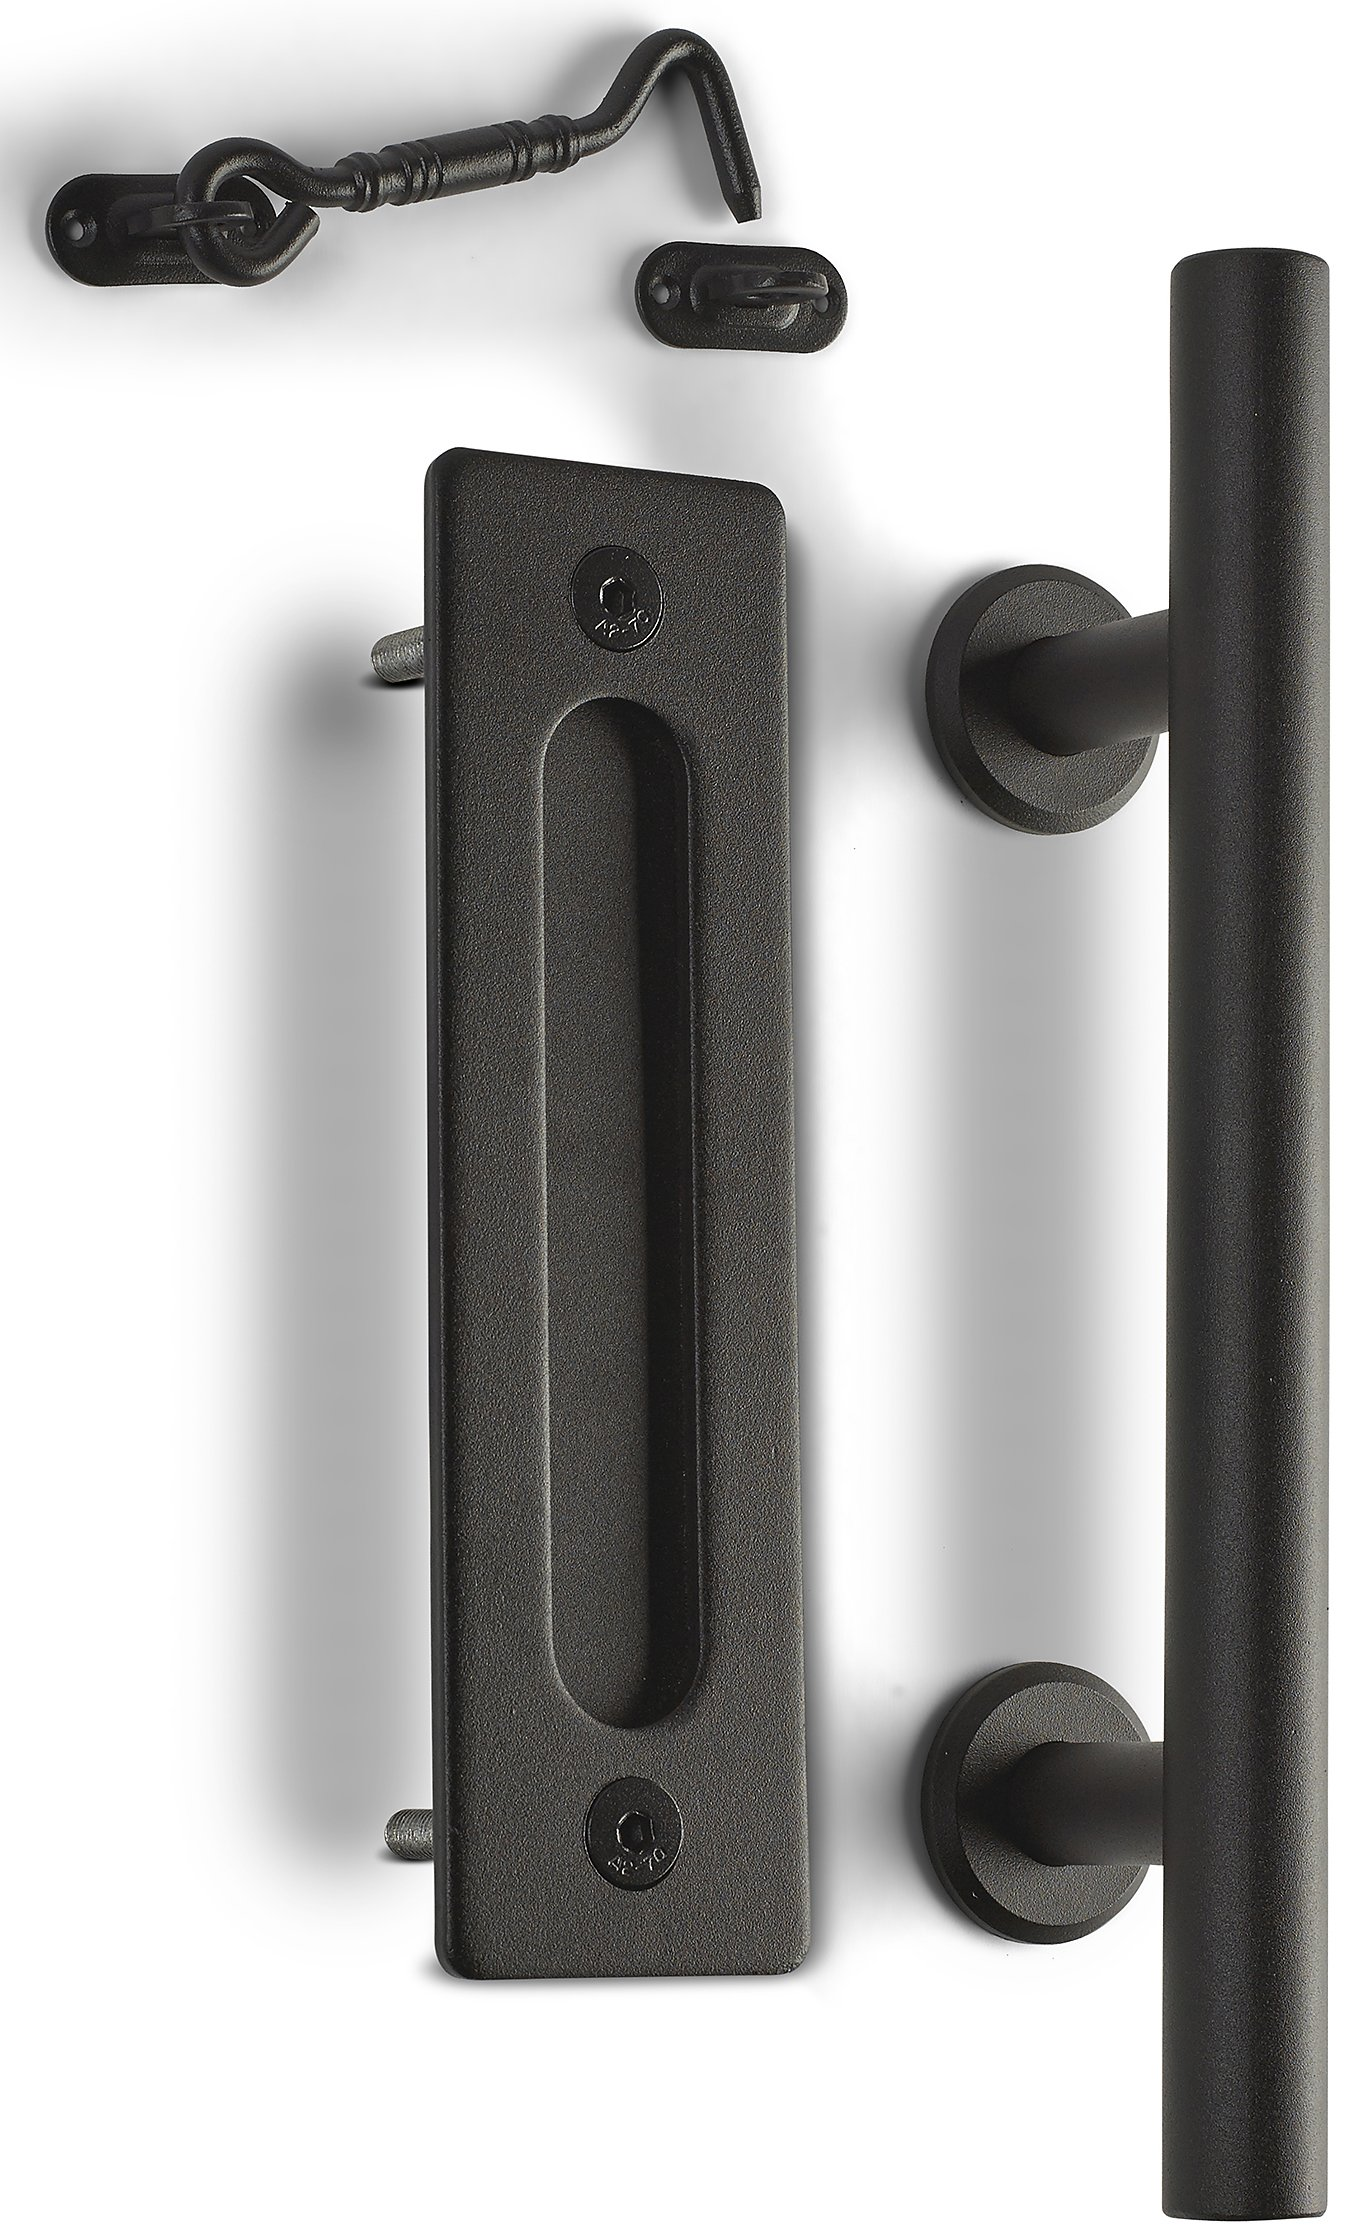 """Caldwell Co. Sliding Barn Door Handle Pull Kit with Flush Mount Plate & Cabin Hook Lock Heavy-Duty Modern Matte Black Hardware Set Strong 12"""" Industrial Pull & Privacy Latch"""